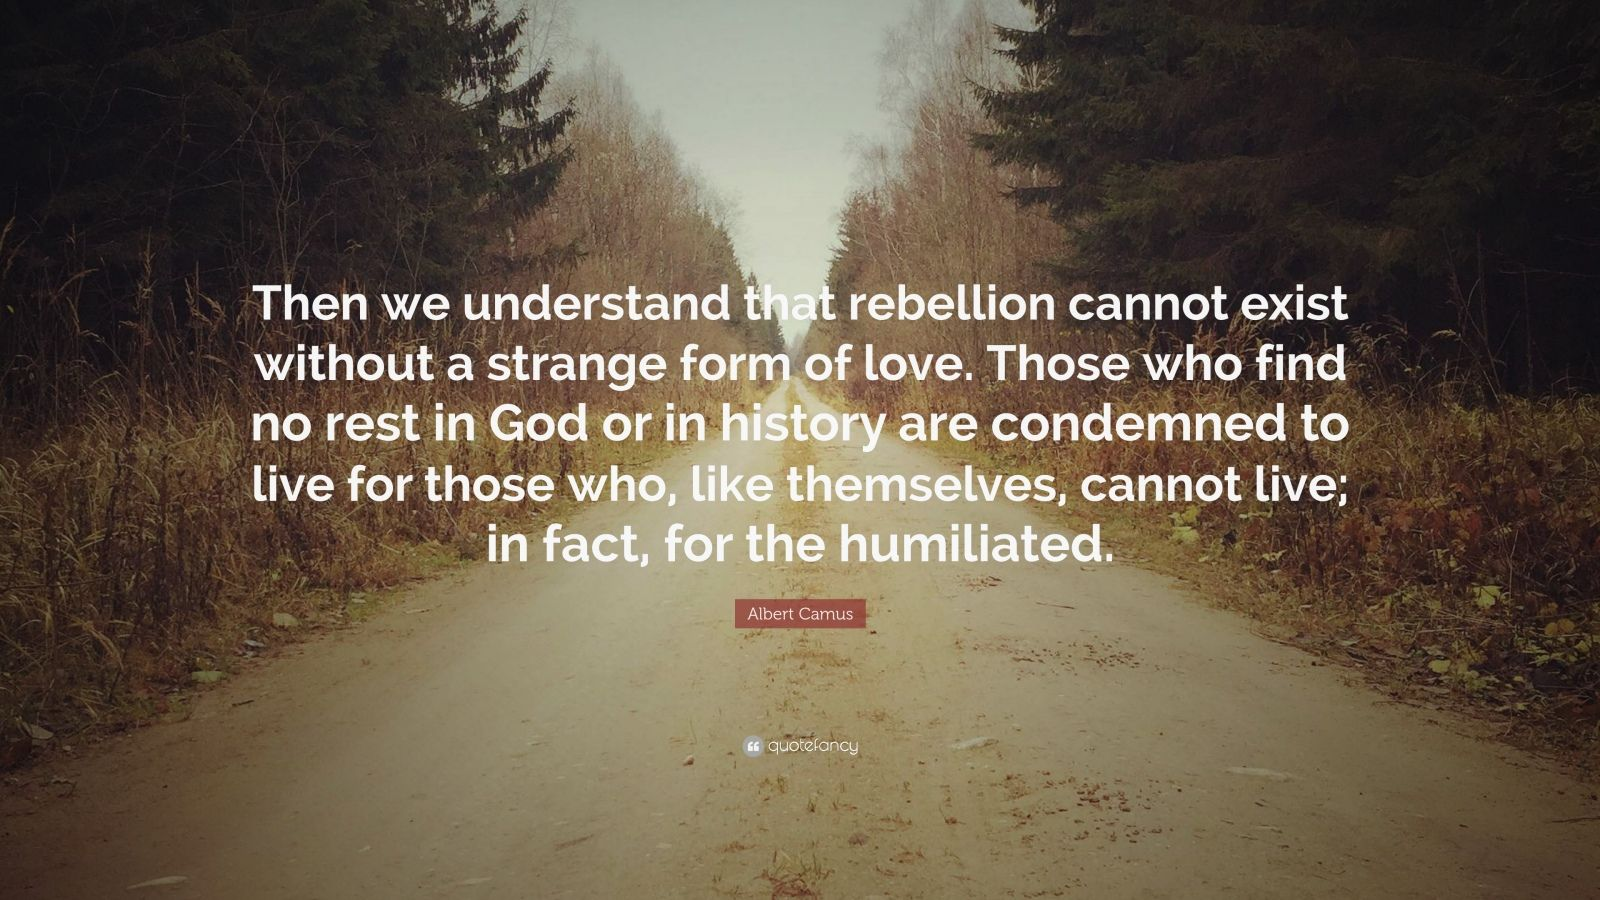 "Albert Camus Quote: ""Then we understand that rebellion cannot exist without a strange form of love. Those who find no rest in God or in history are condemned to live for those who, like themselves, cannot live; in fact, for the humiliated."""